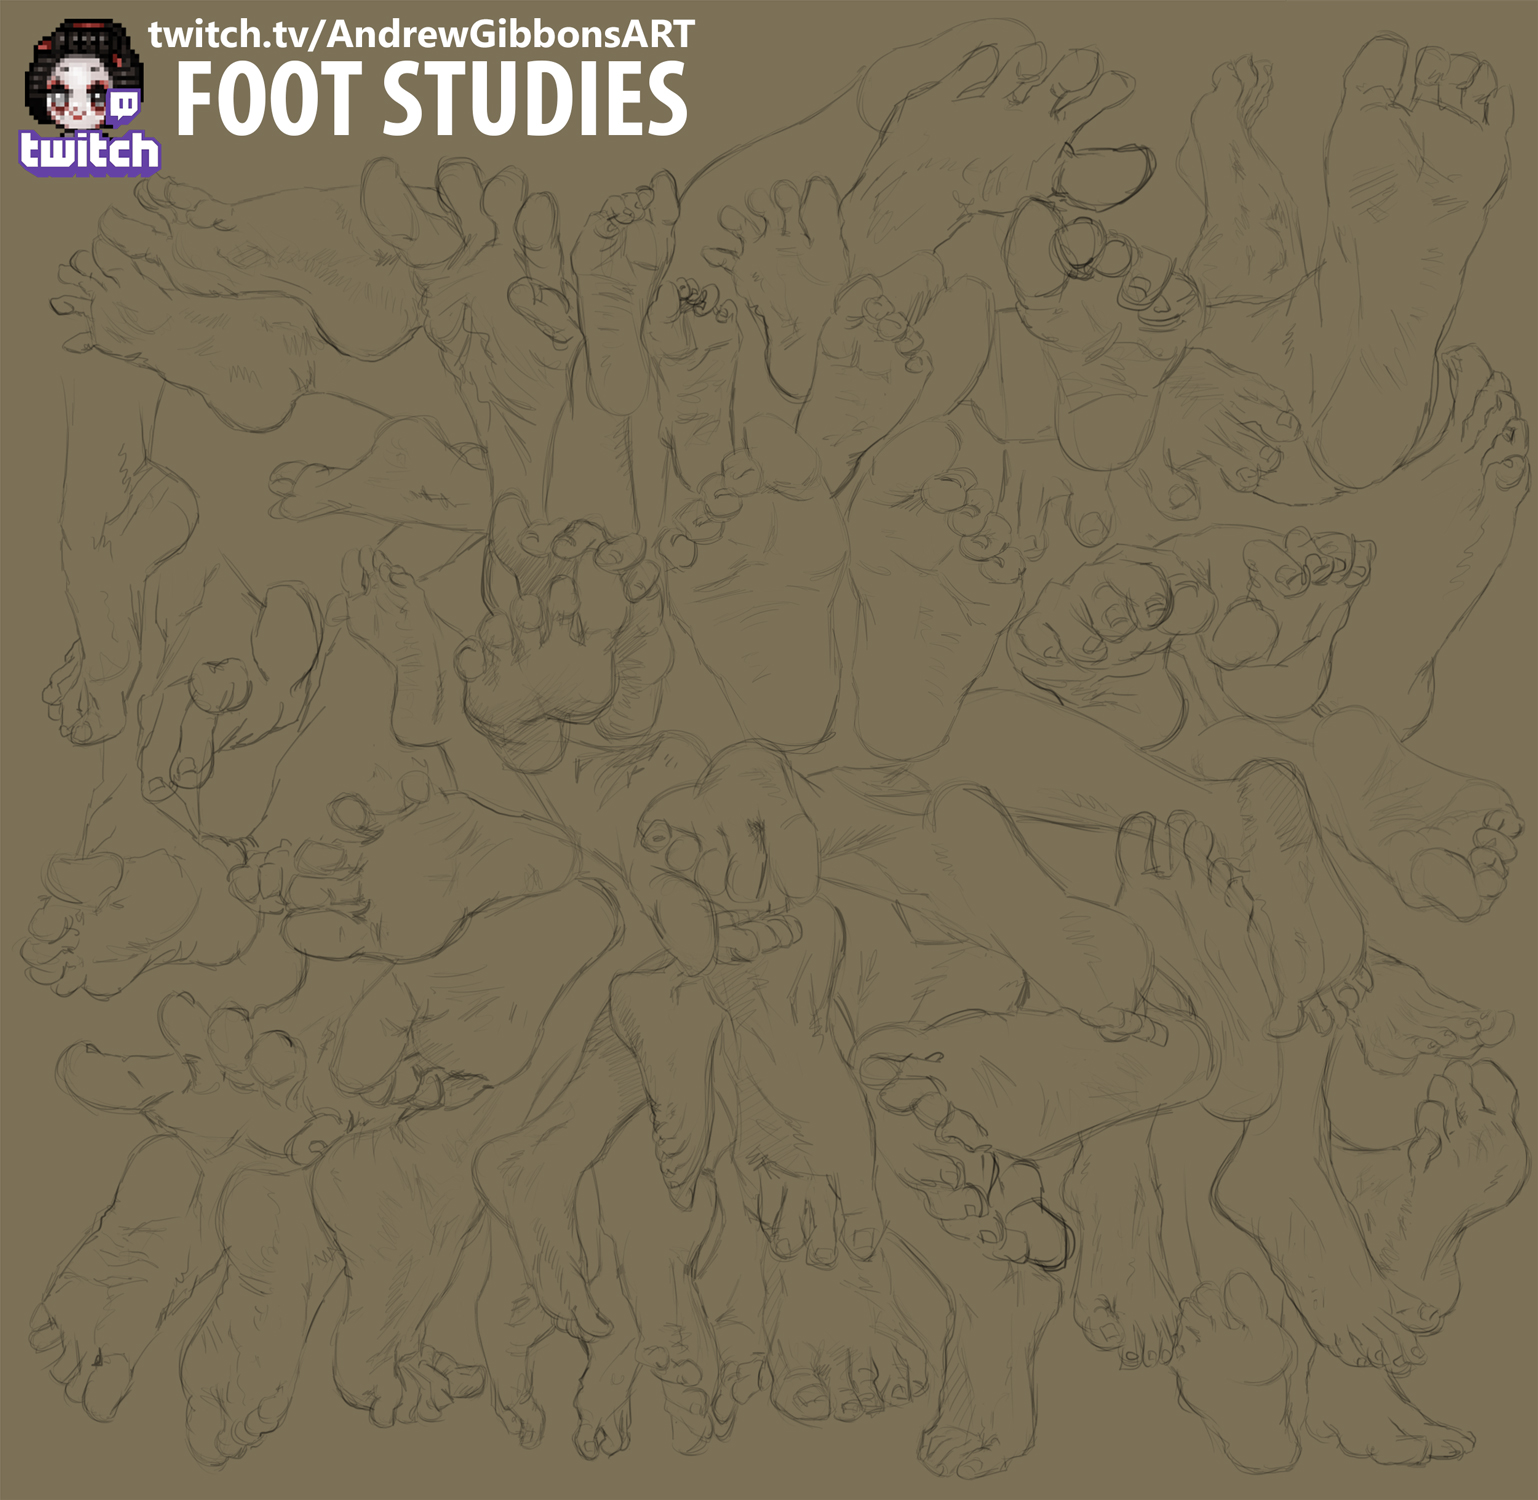 [Image: twitch_foot_studies_10_01_2018_by_andrew...bzivae.jpg]